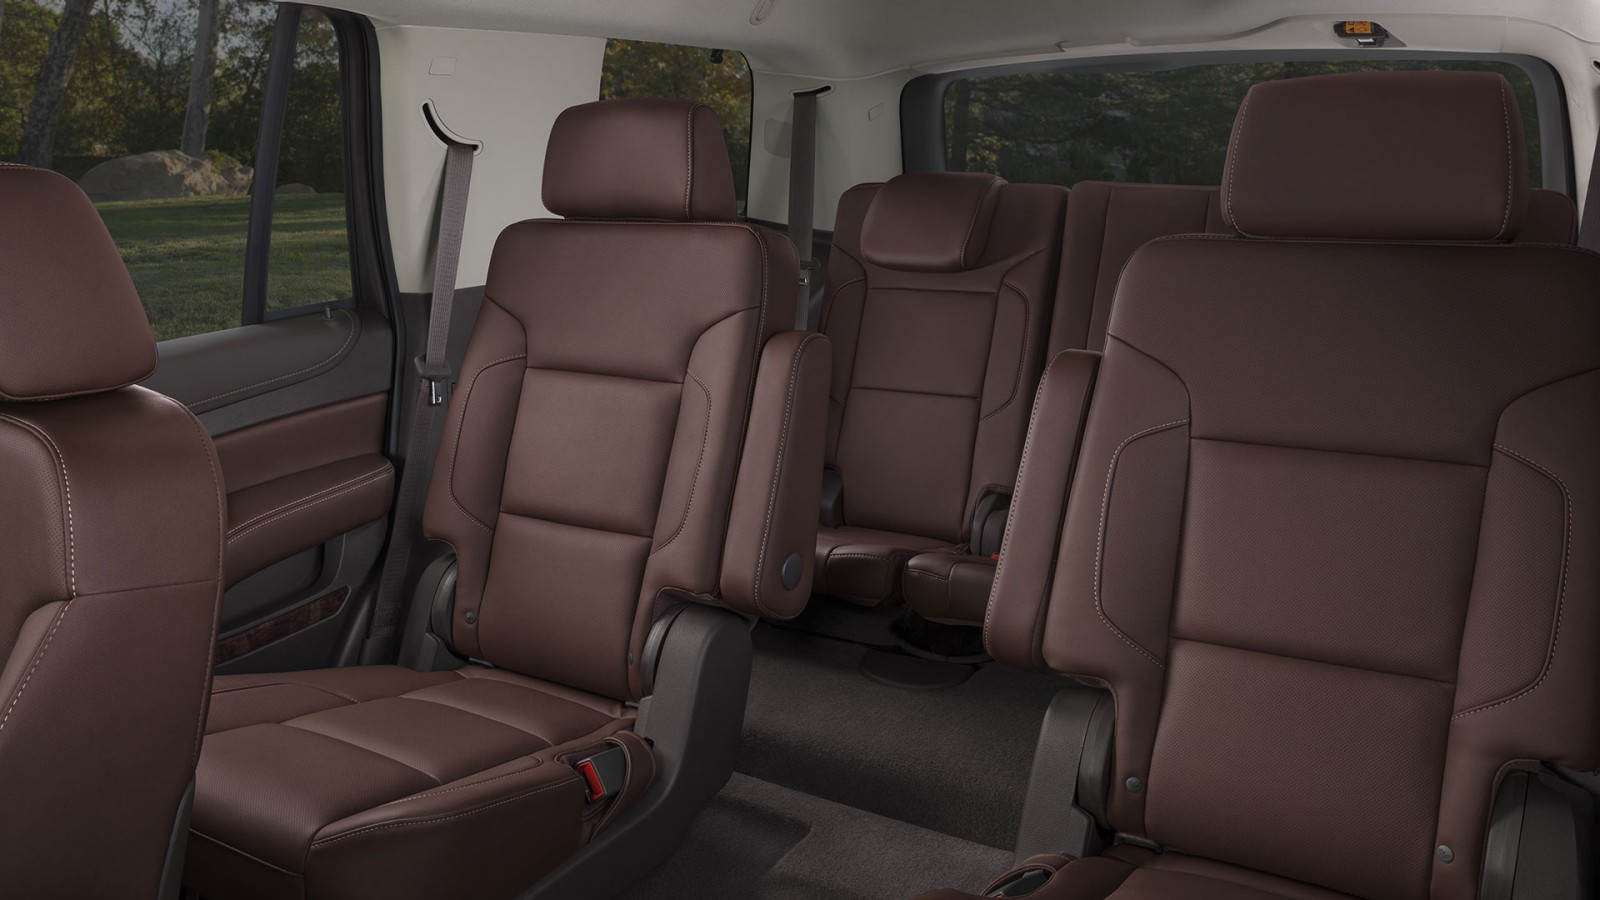 2016 Chevrolet Tahoe Interior Seating